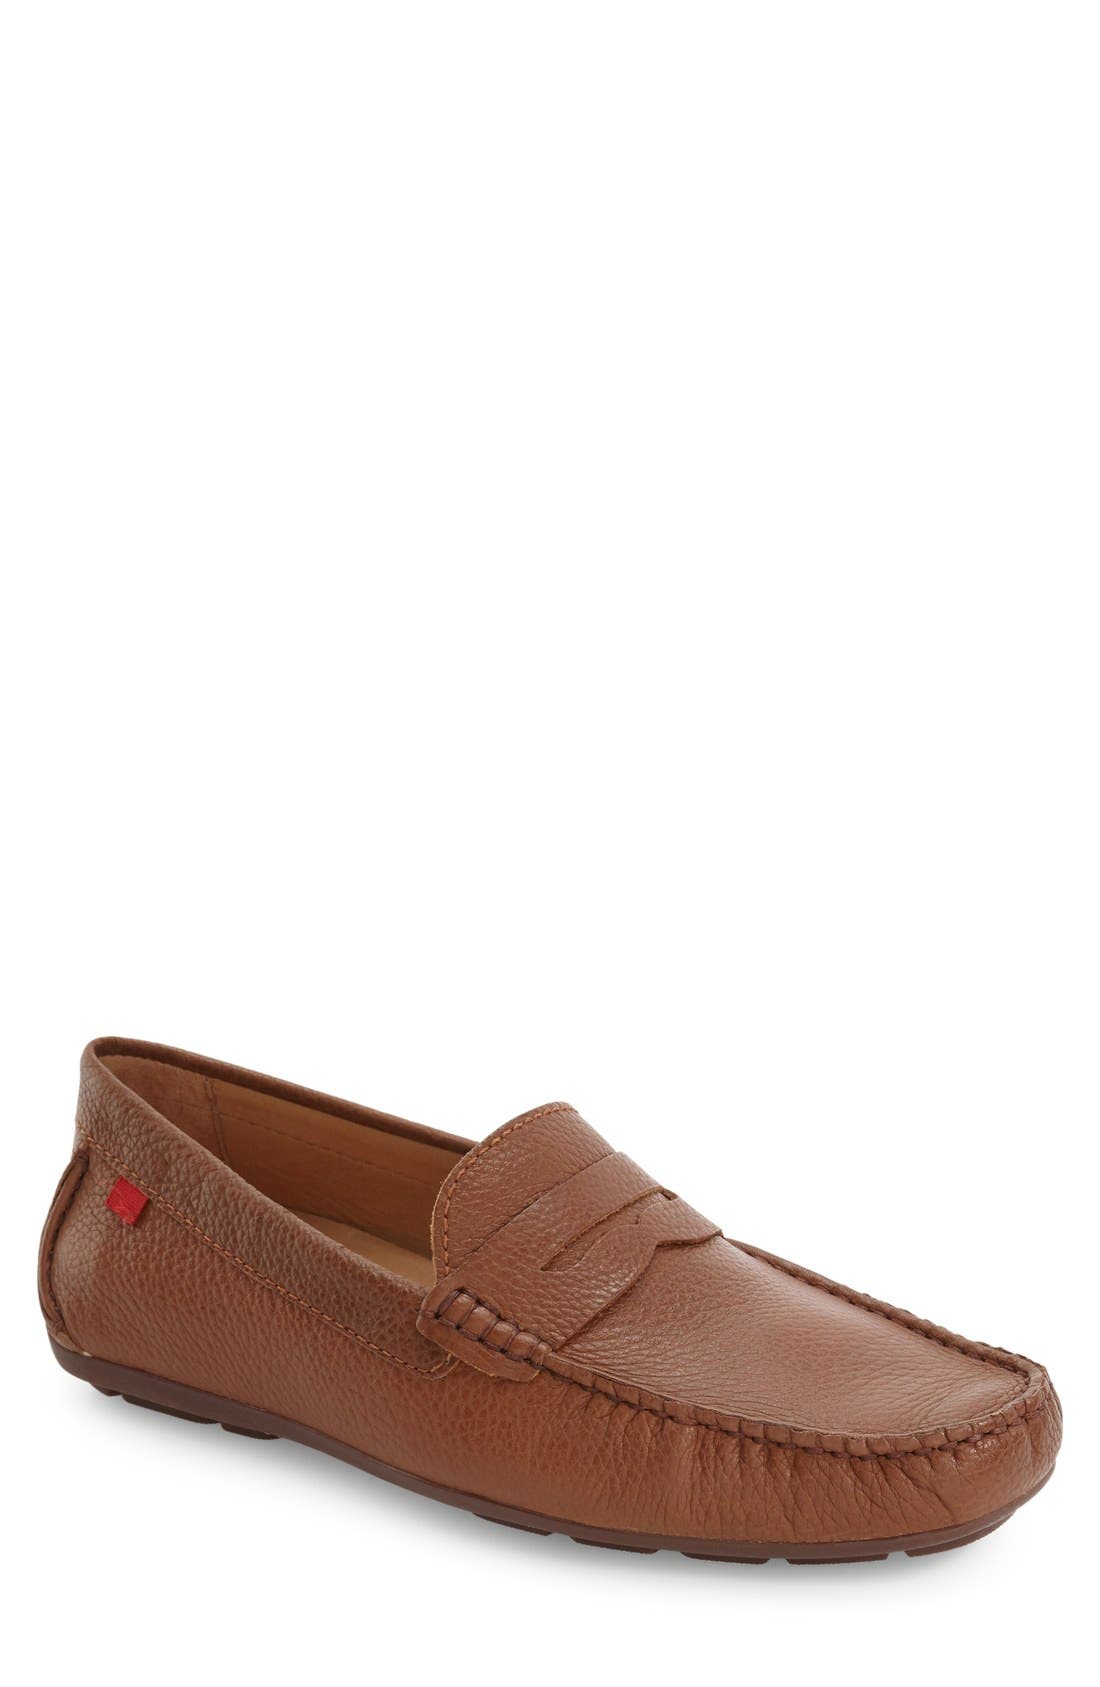 'Union Street' Penny Loafer,                             Alternate thumbnail 6, color,